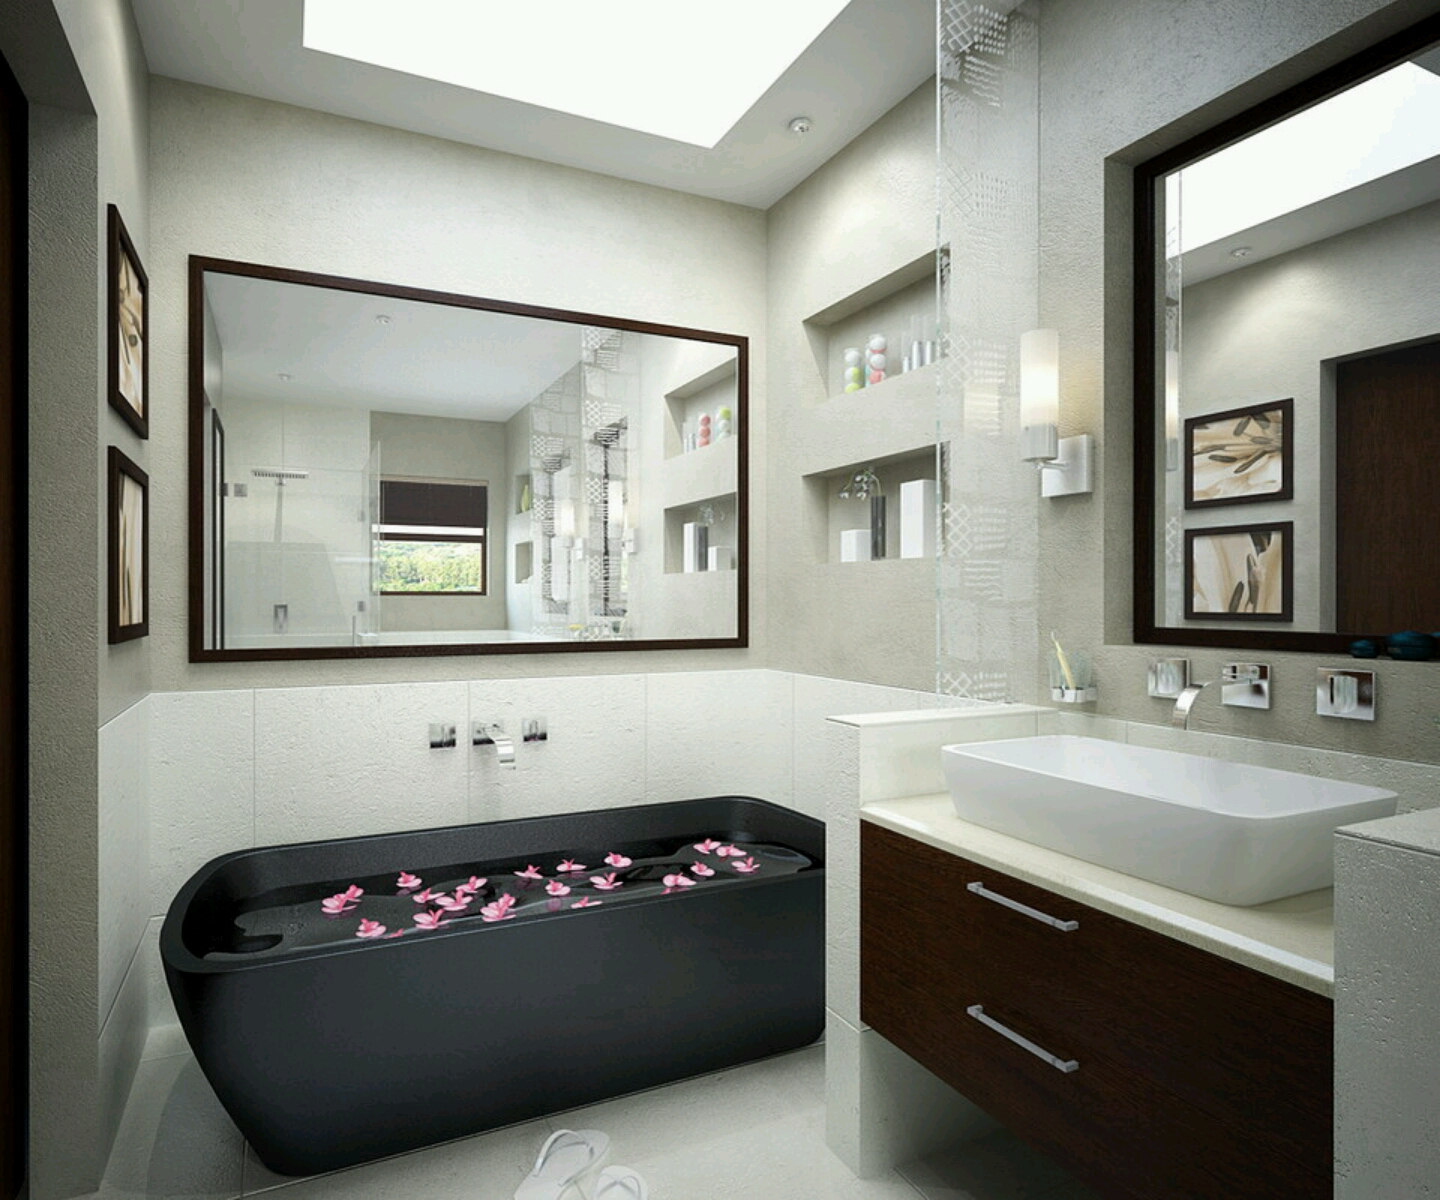 Modern bathrooms cabinets designs furniture gallery for Sophisticated bathroom design